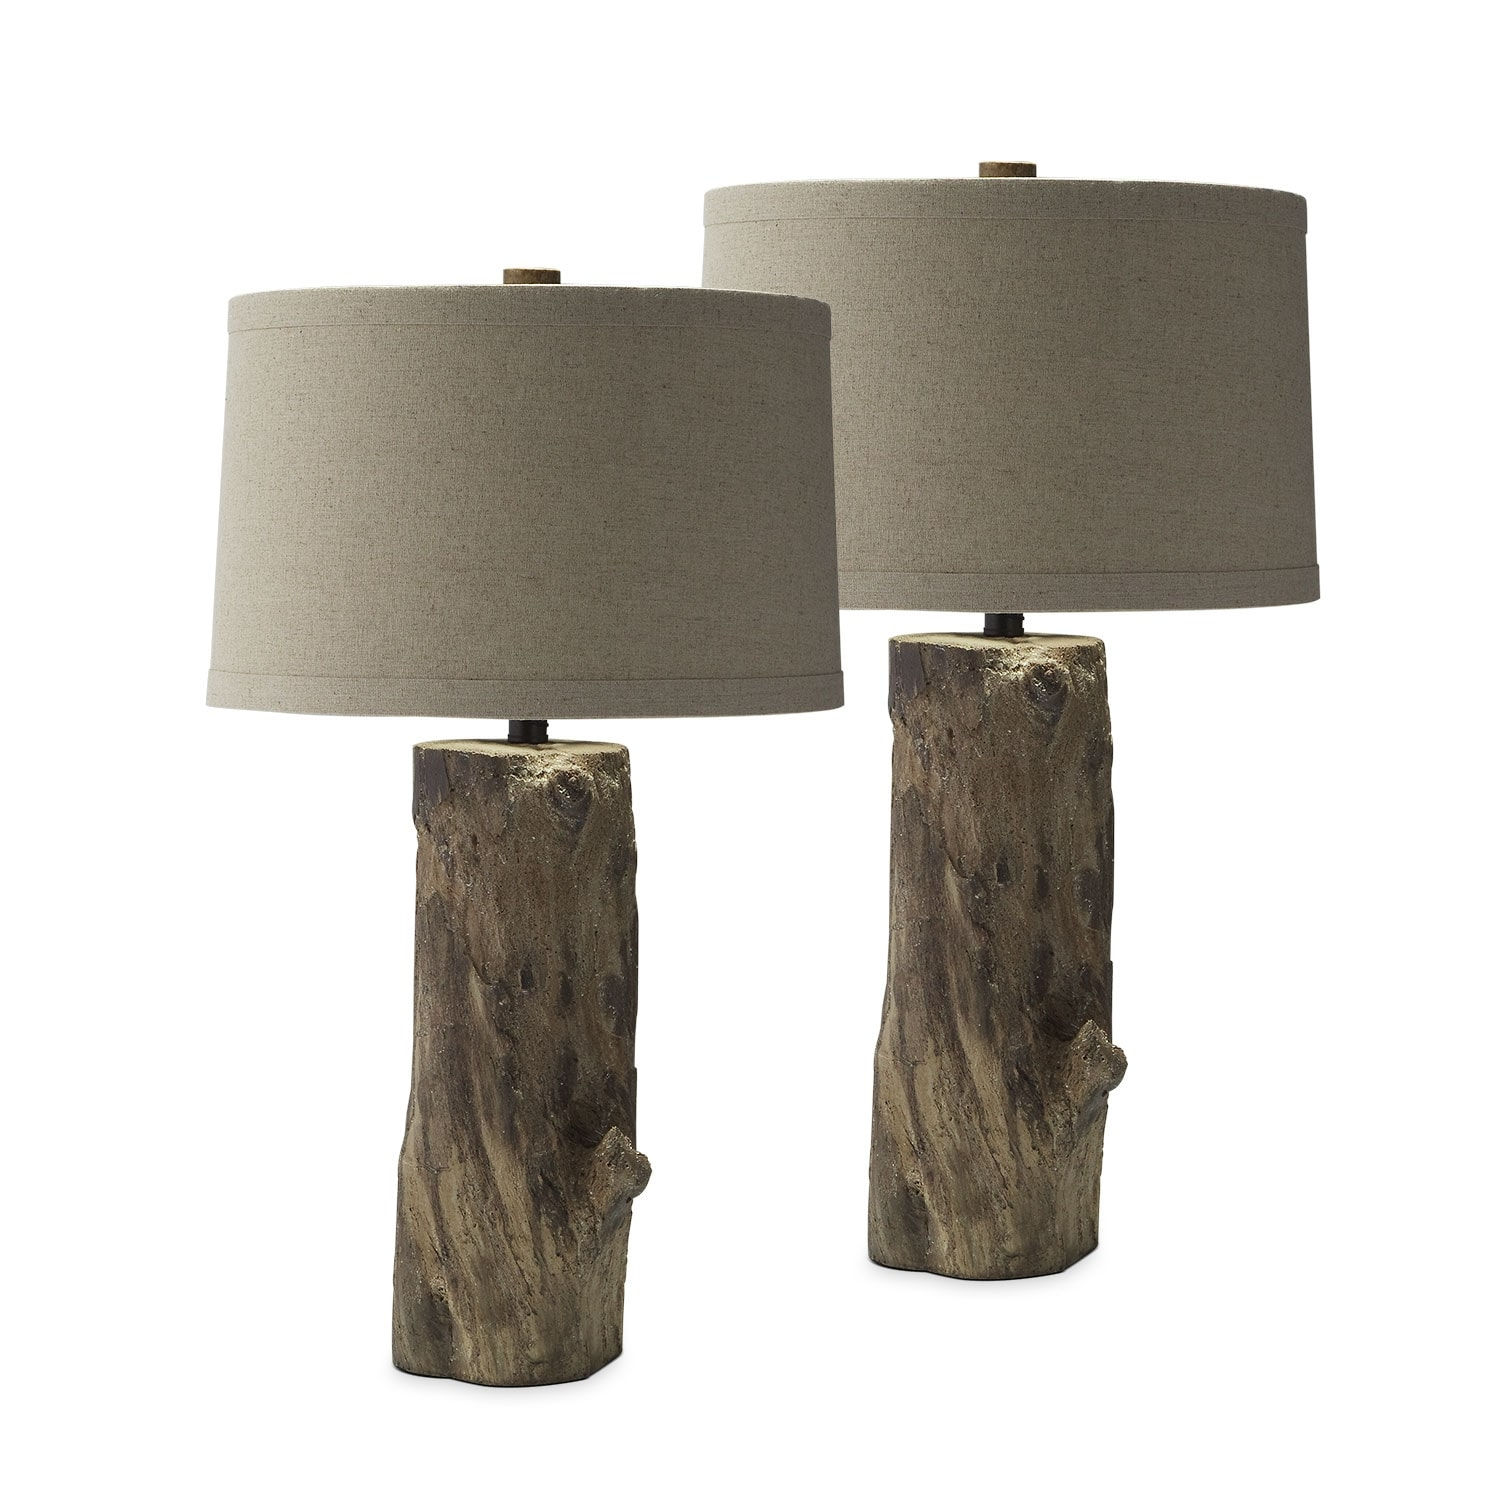 Home Accessories - Faux Wood Stump 2-Pack Table Lamps